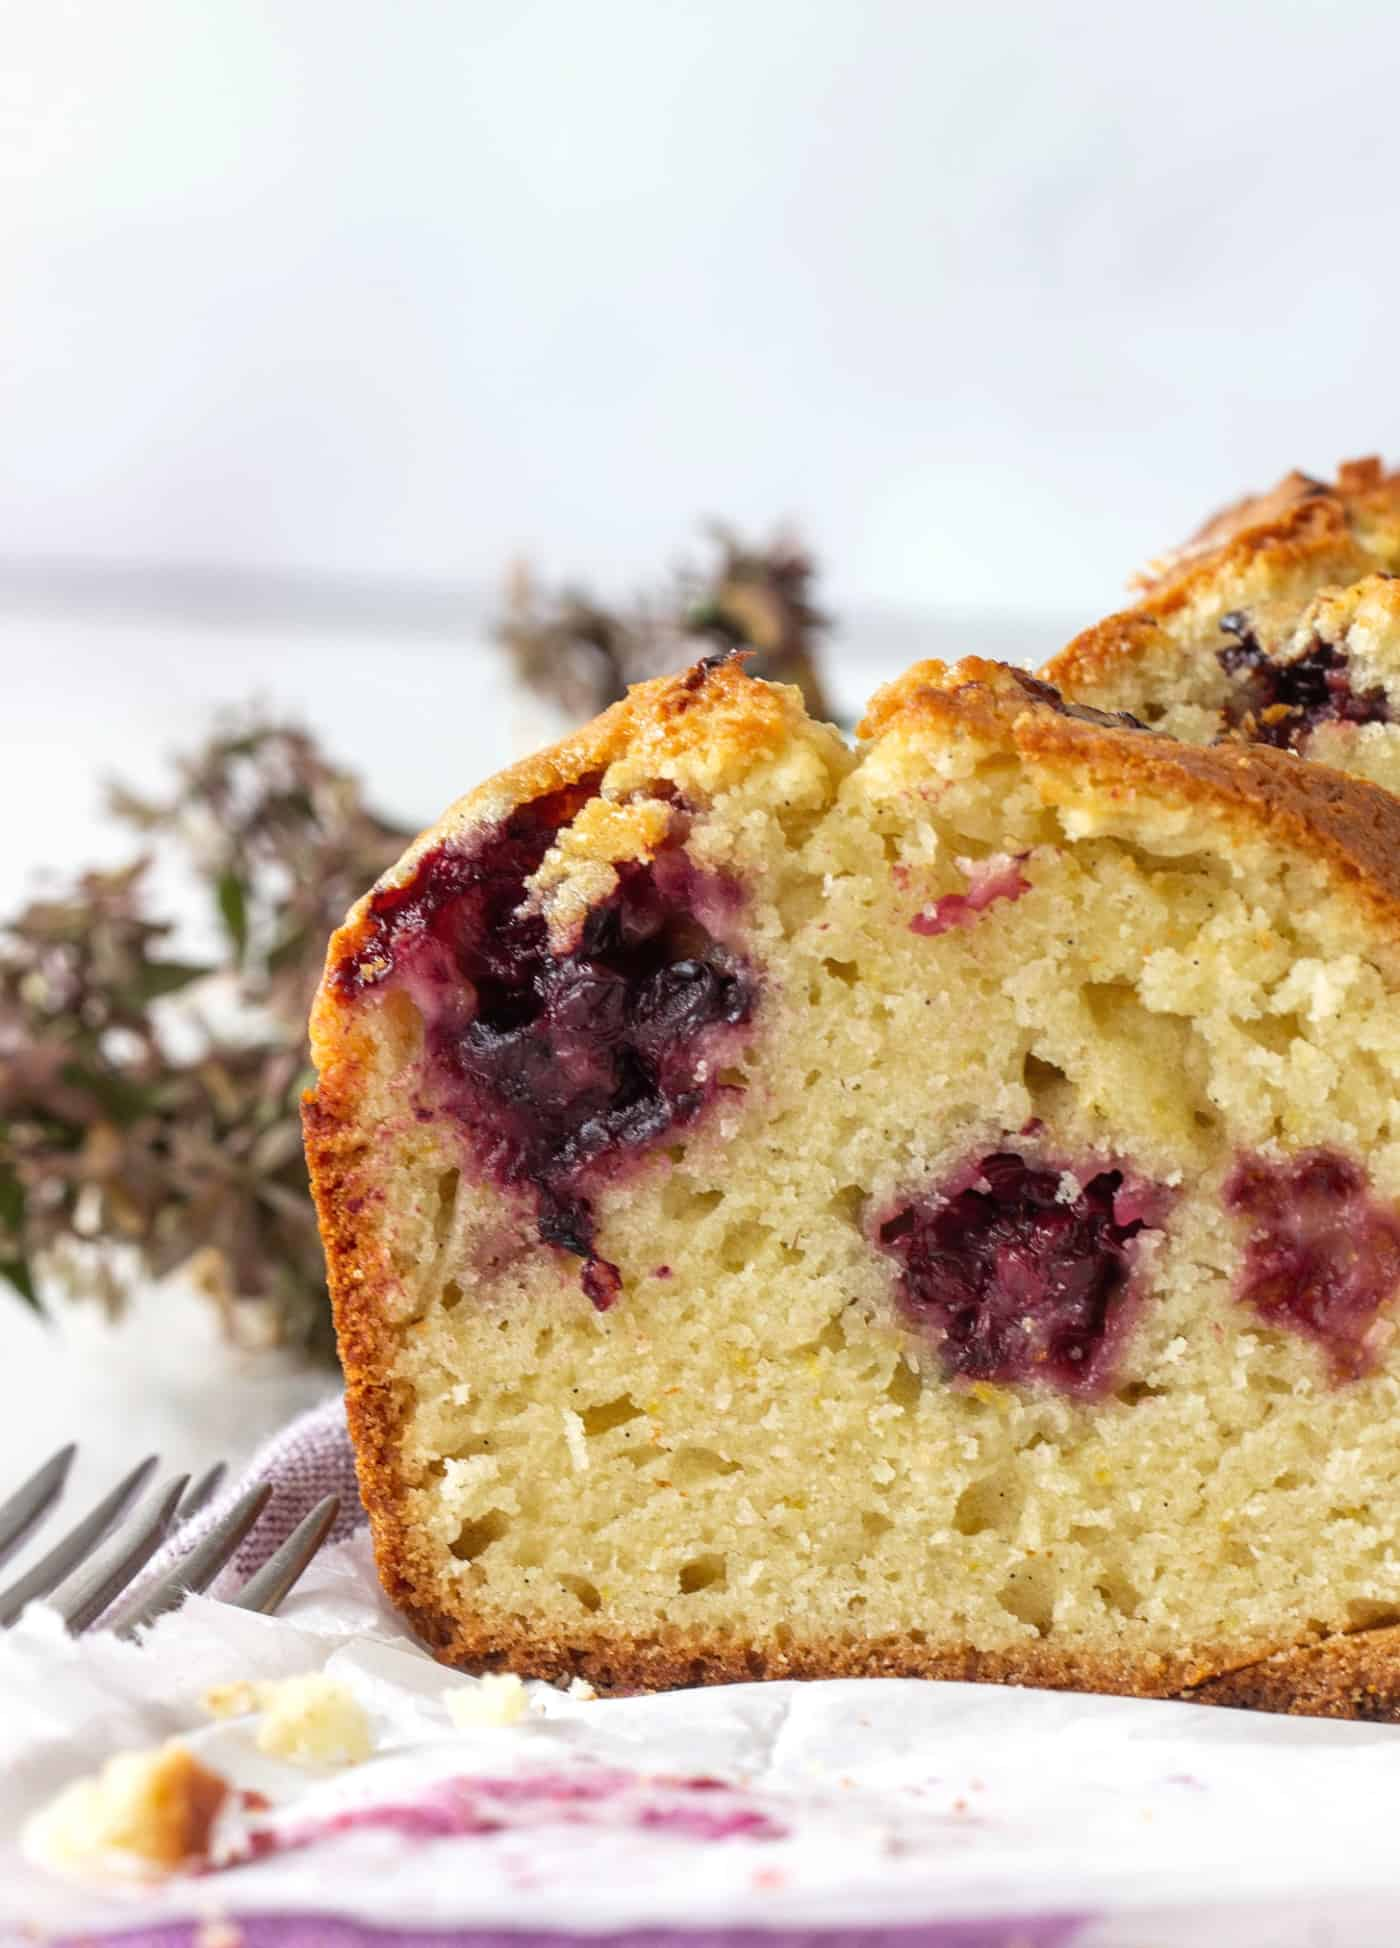 Orange blackberry muffin cake